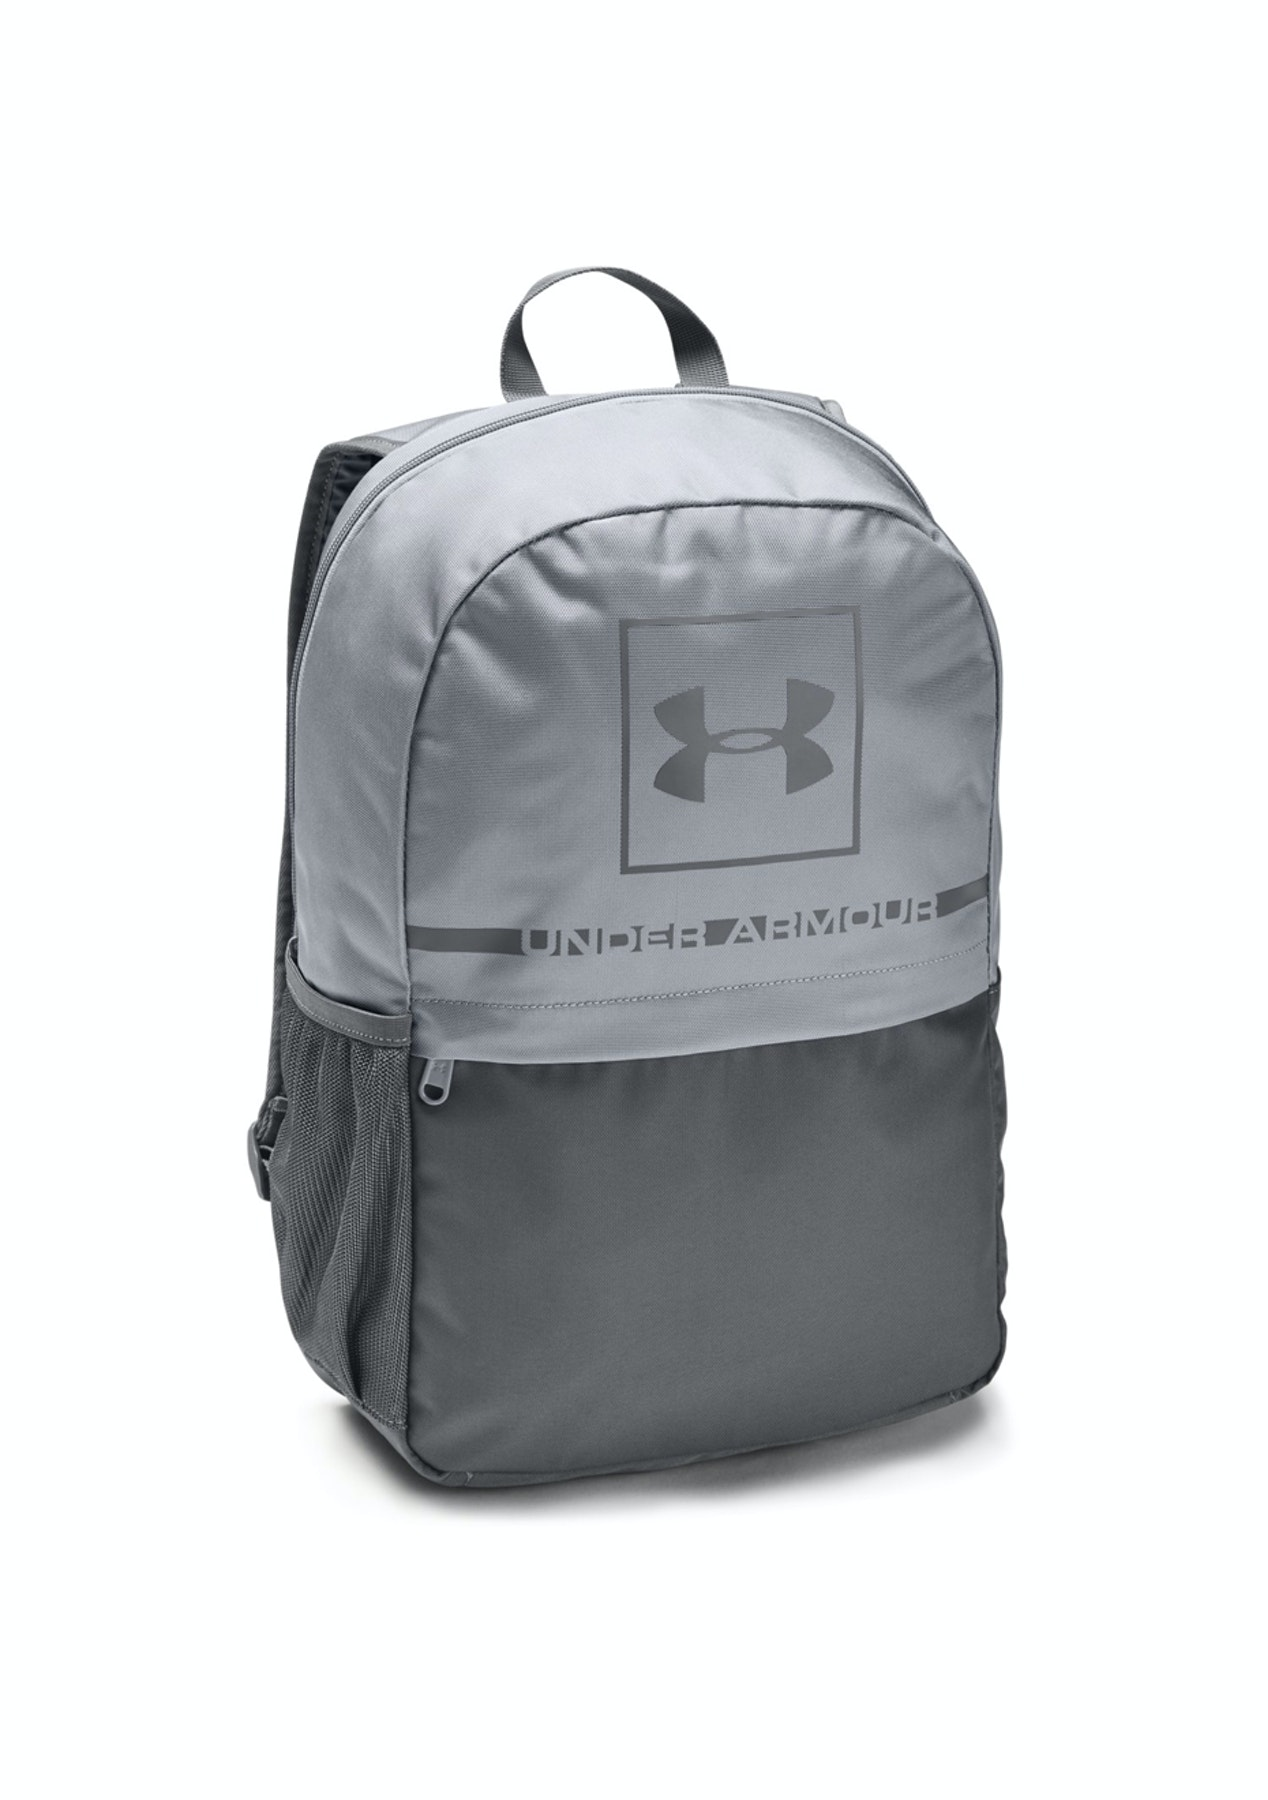 Under Armour - Roland Backpack - Steel - Backpack Clearance - Onceit 49fd6de4b